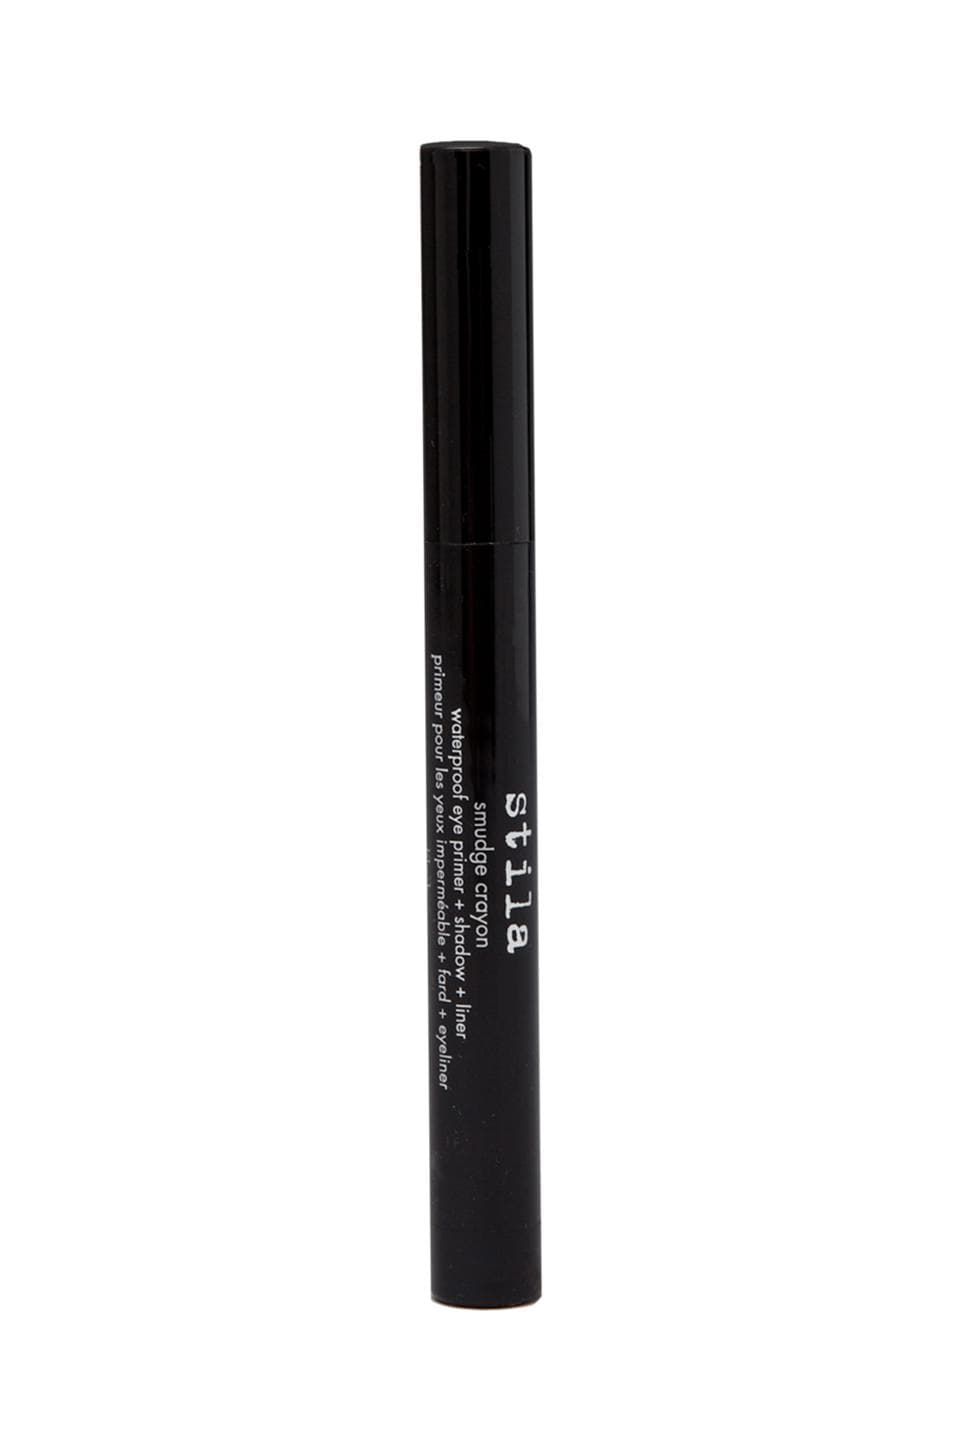 Stila Smudge Crayon Waterproof Eye Primer + Shadow + Liner